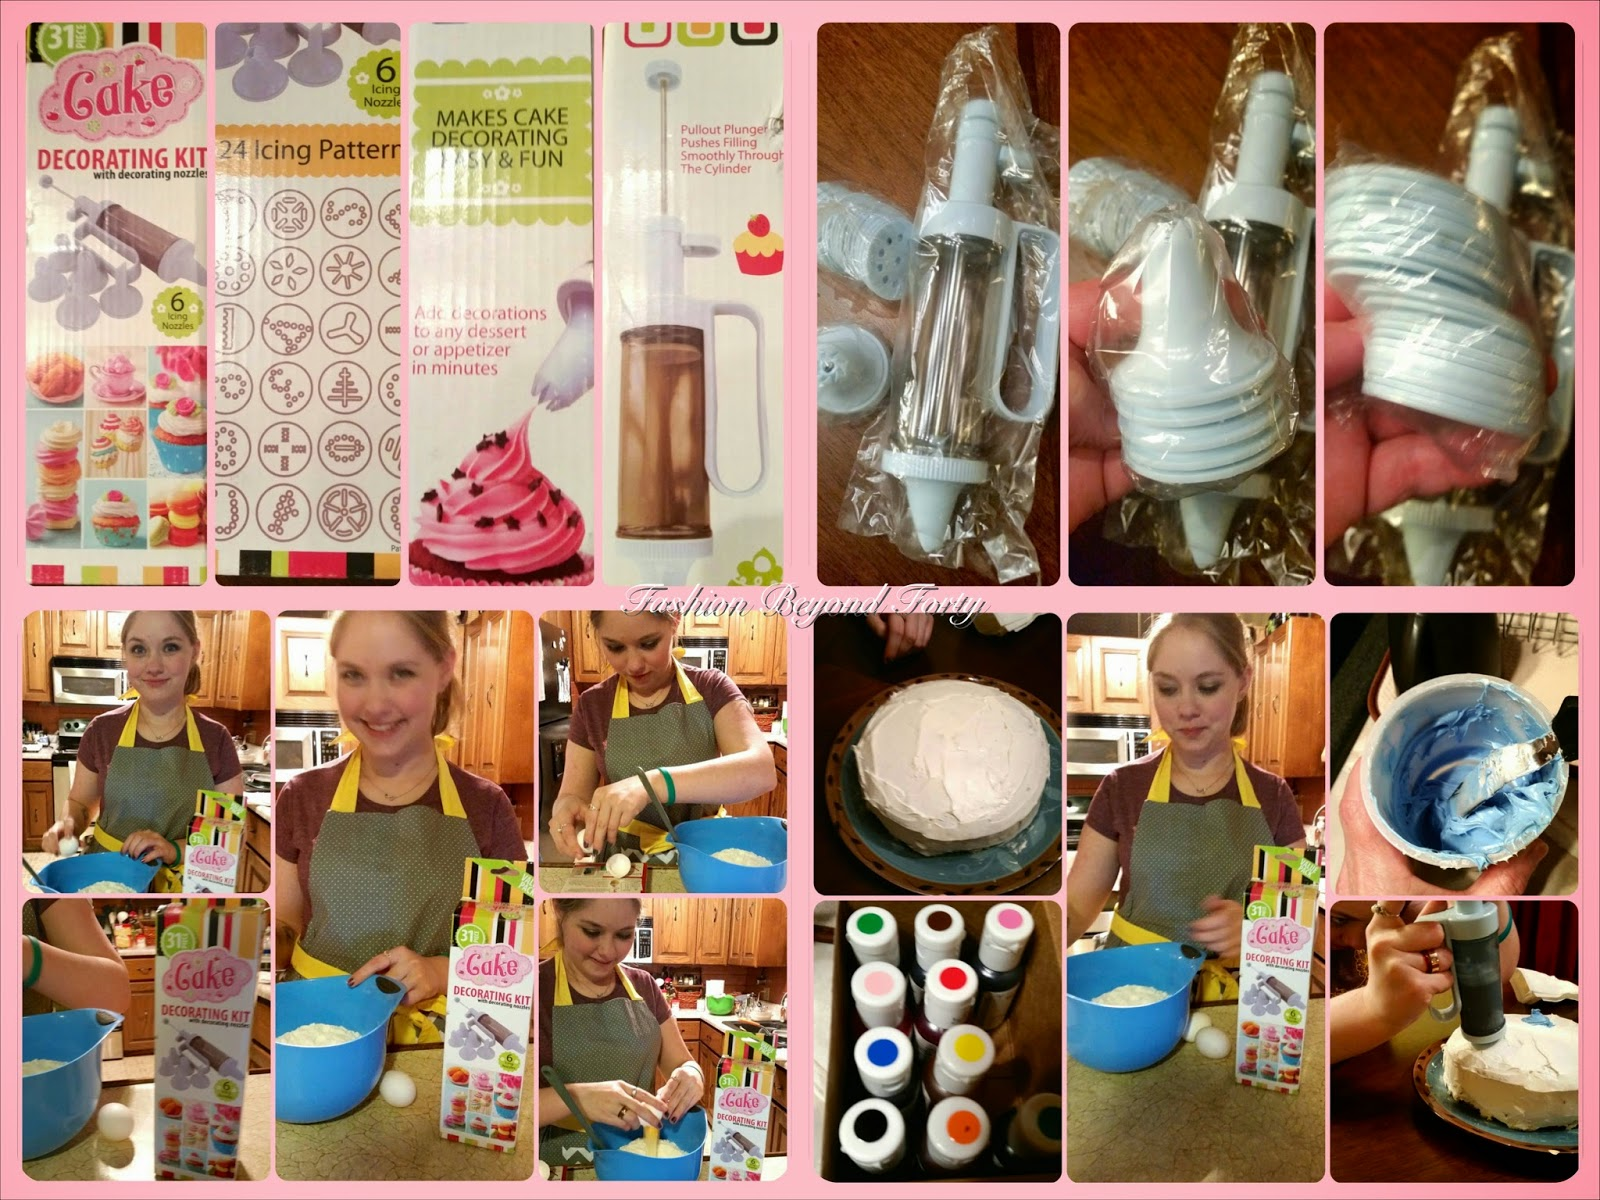 Cake Decorating Kit: 31 Nozzles 6 Tips Product Review